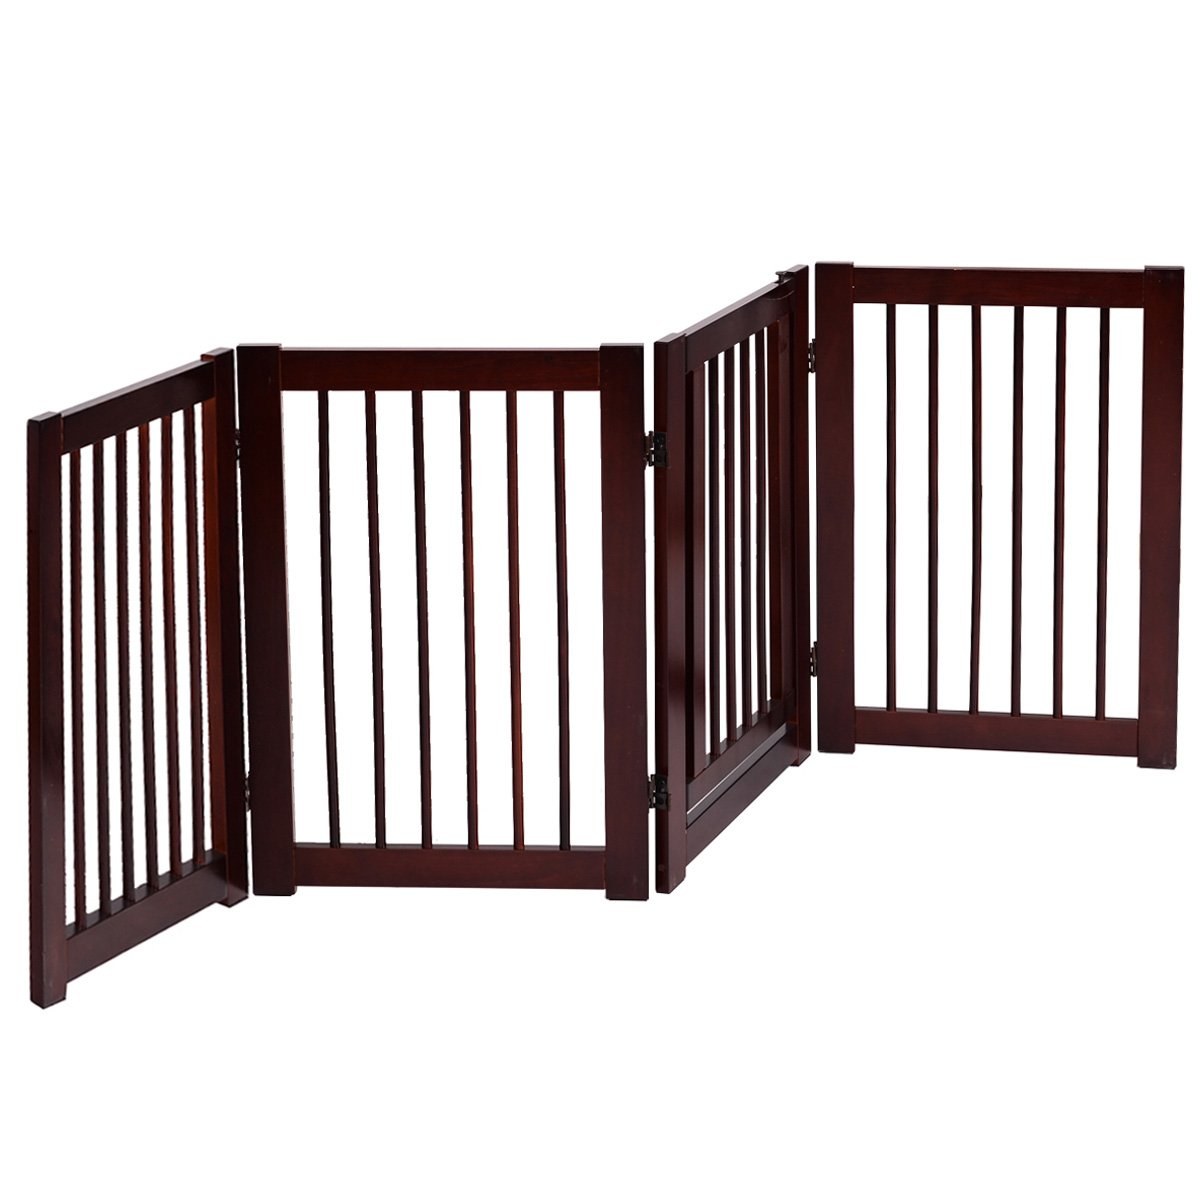 Giantex Pet Gate with Door Wooden Pet Playpen Adjustable Panel Safety Gate, Cerise Finish (30'')